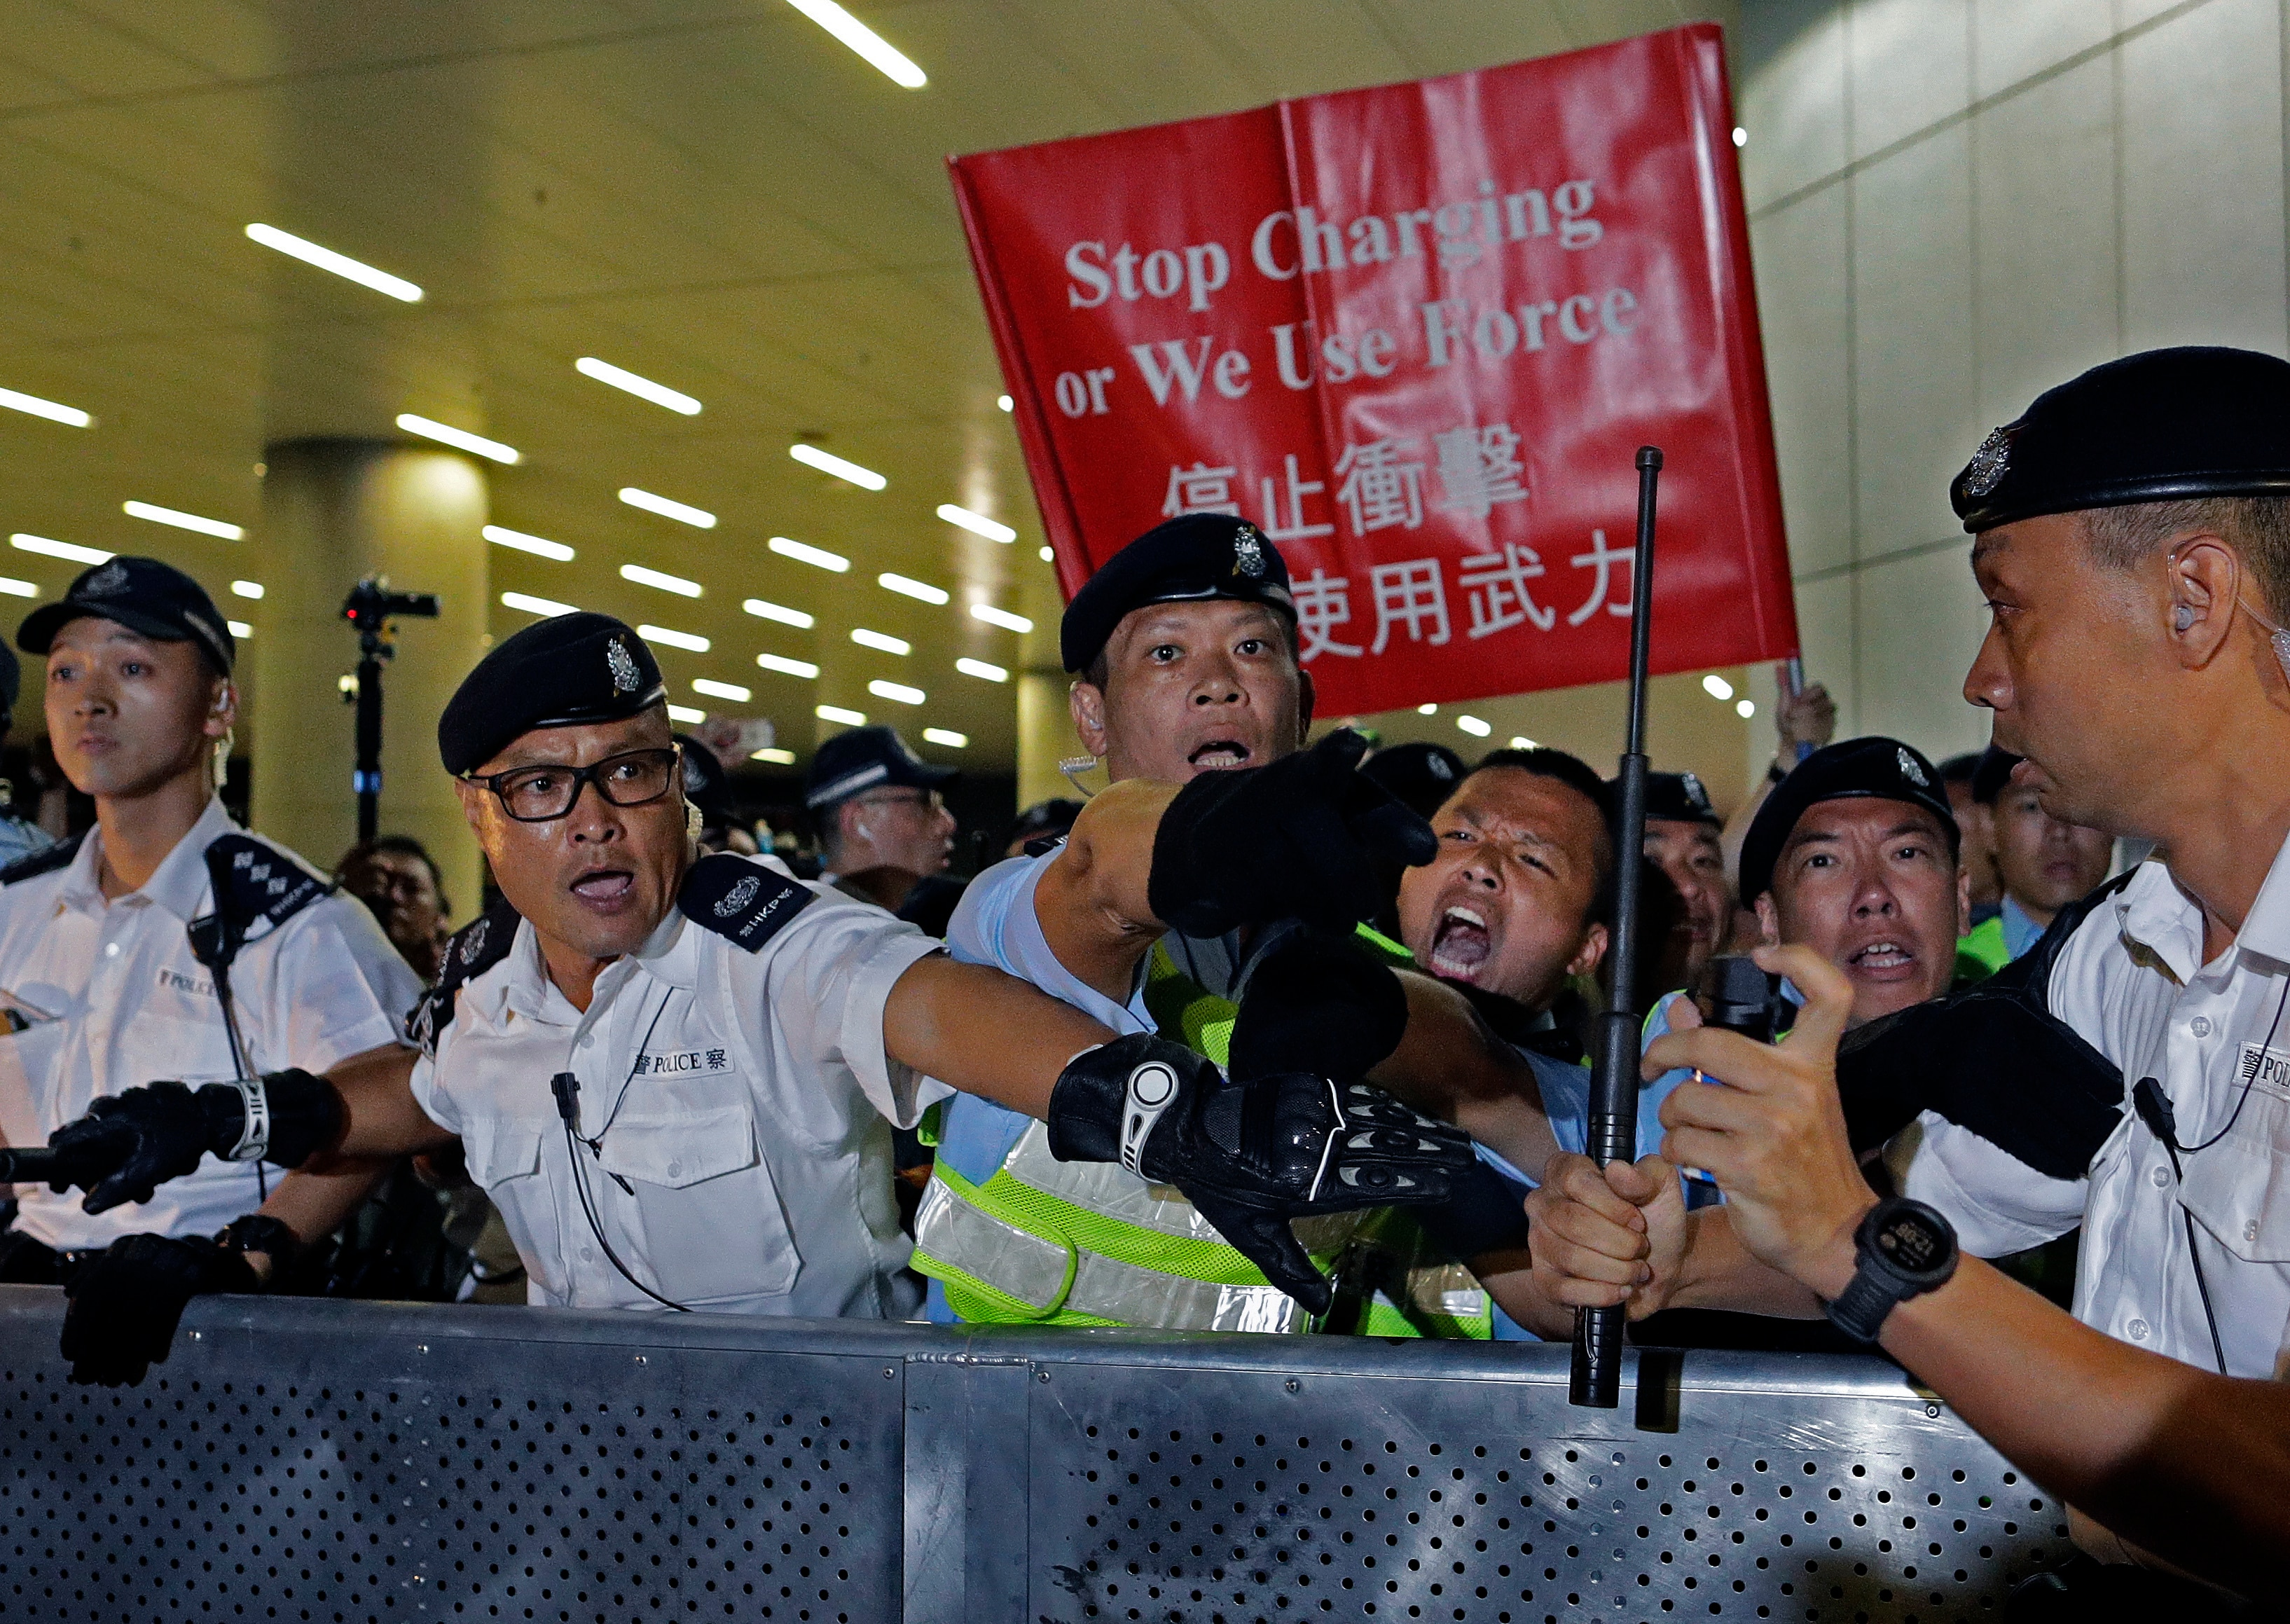 Police officers react as the clash against protesters in a rally against the proposed amendments to the extradition law at the Legislative Council in Hong Kong